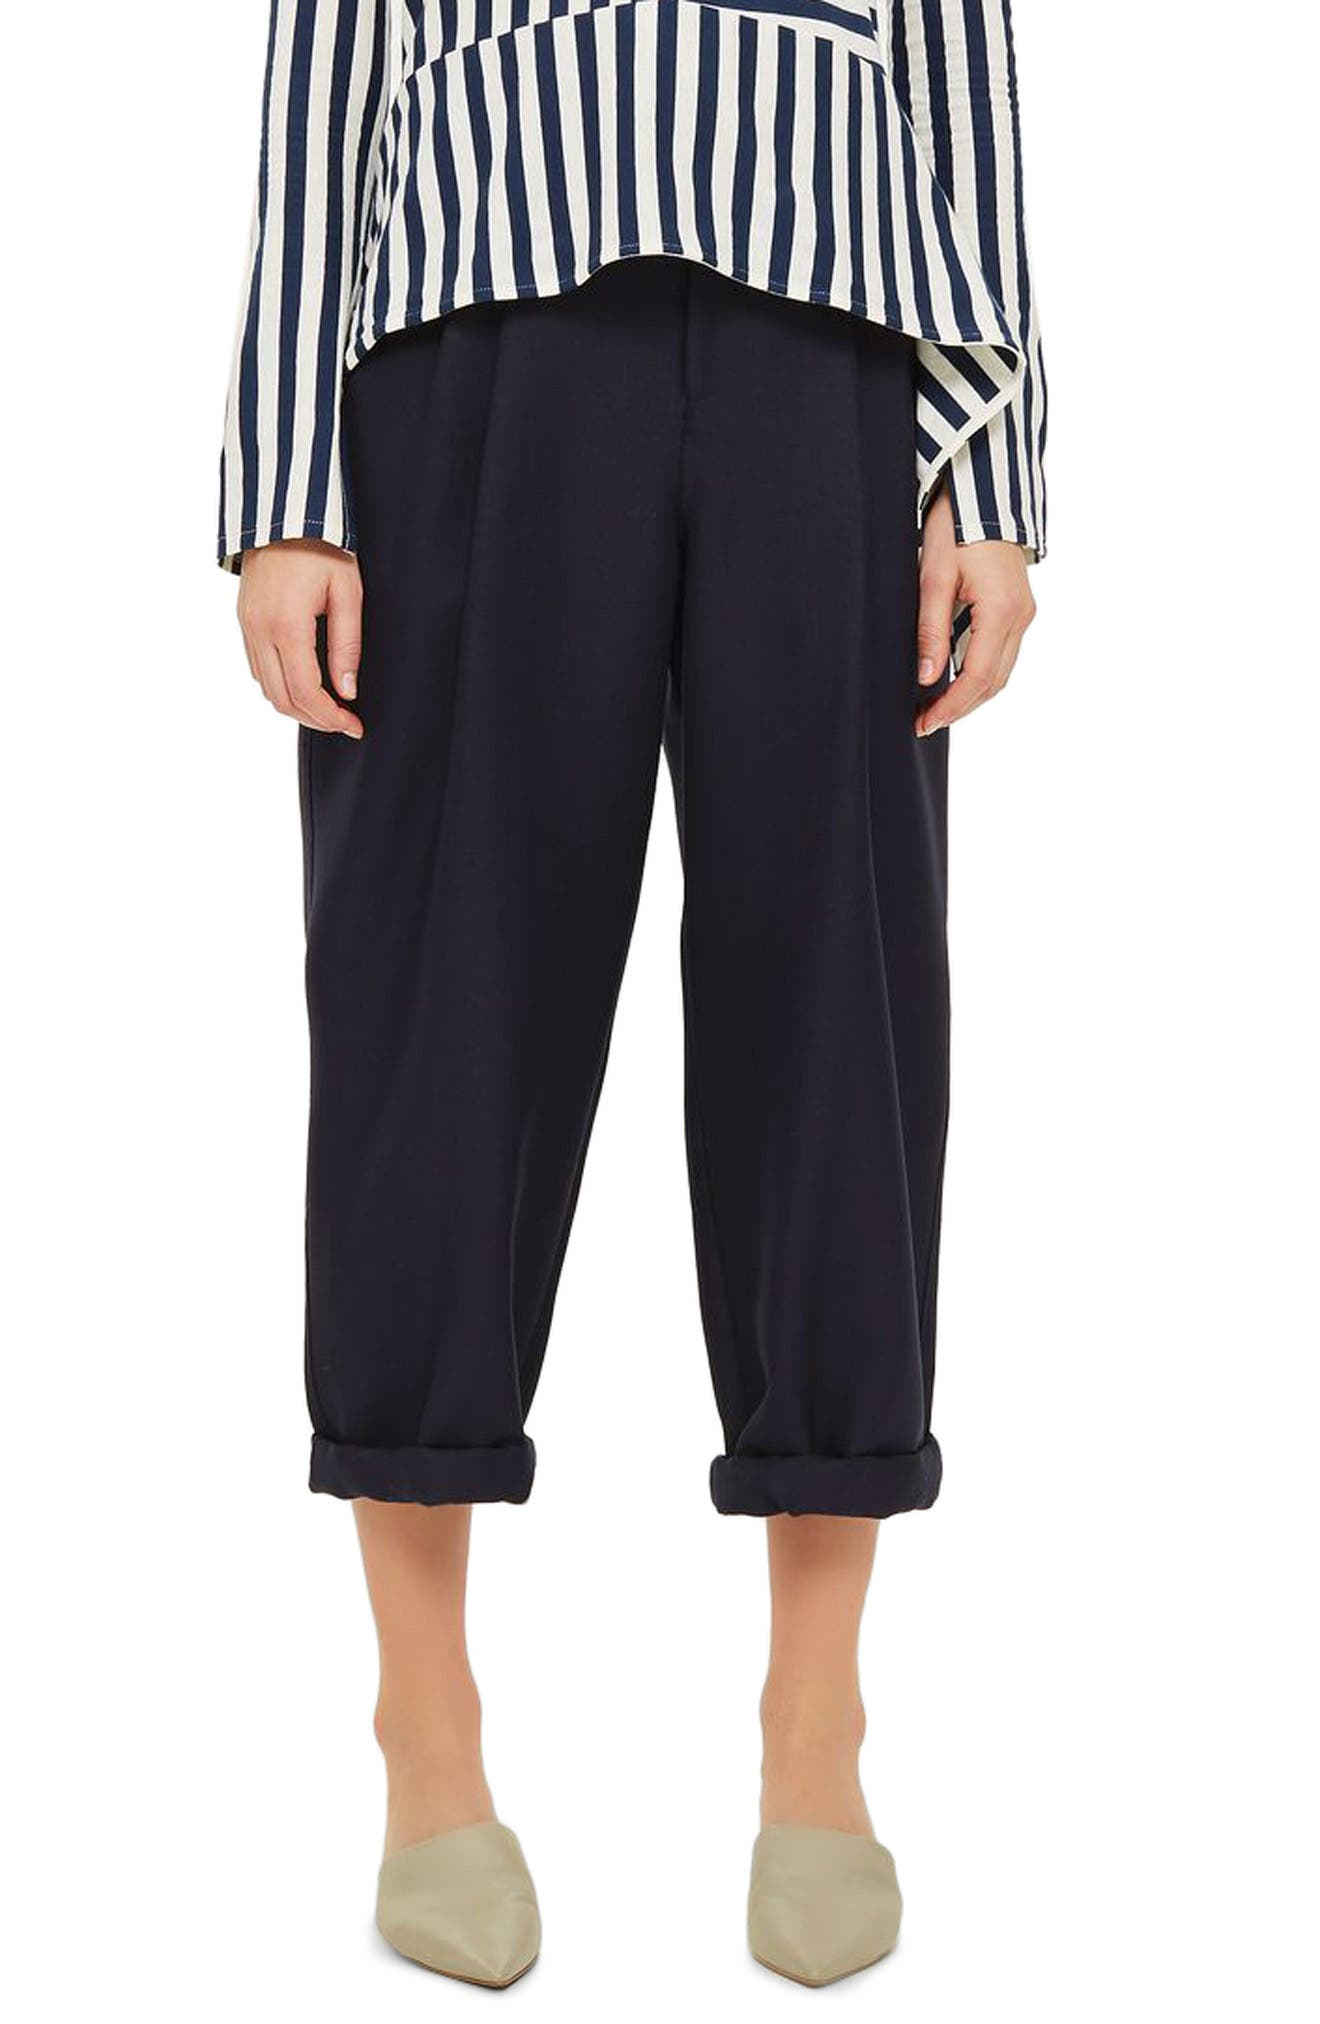 Nords Mensy Trousers,                         Main,                         color, Navy Blue